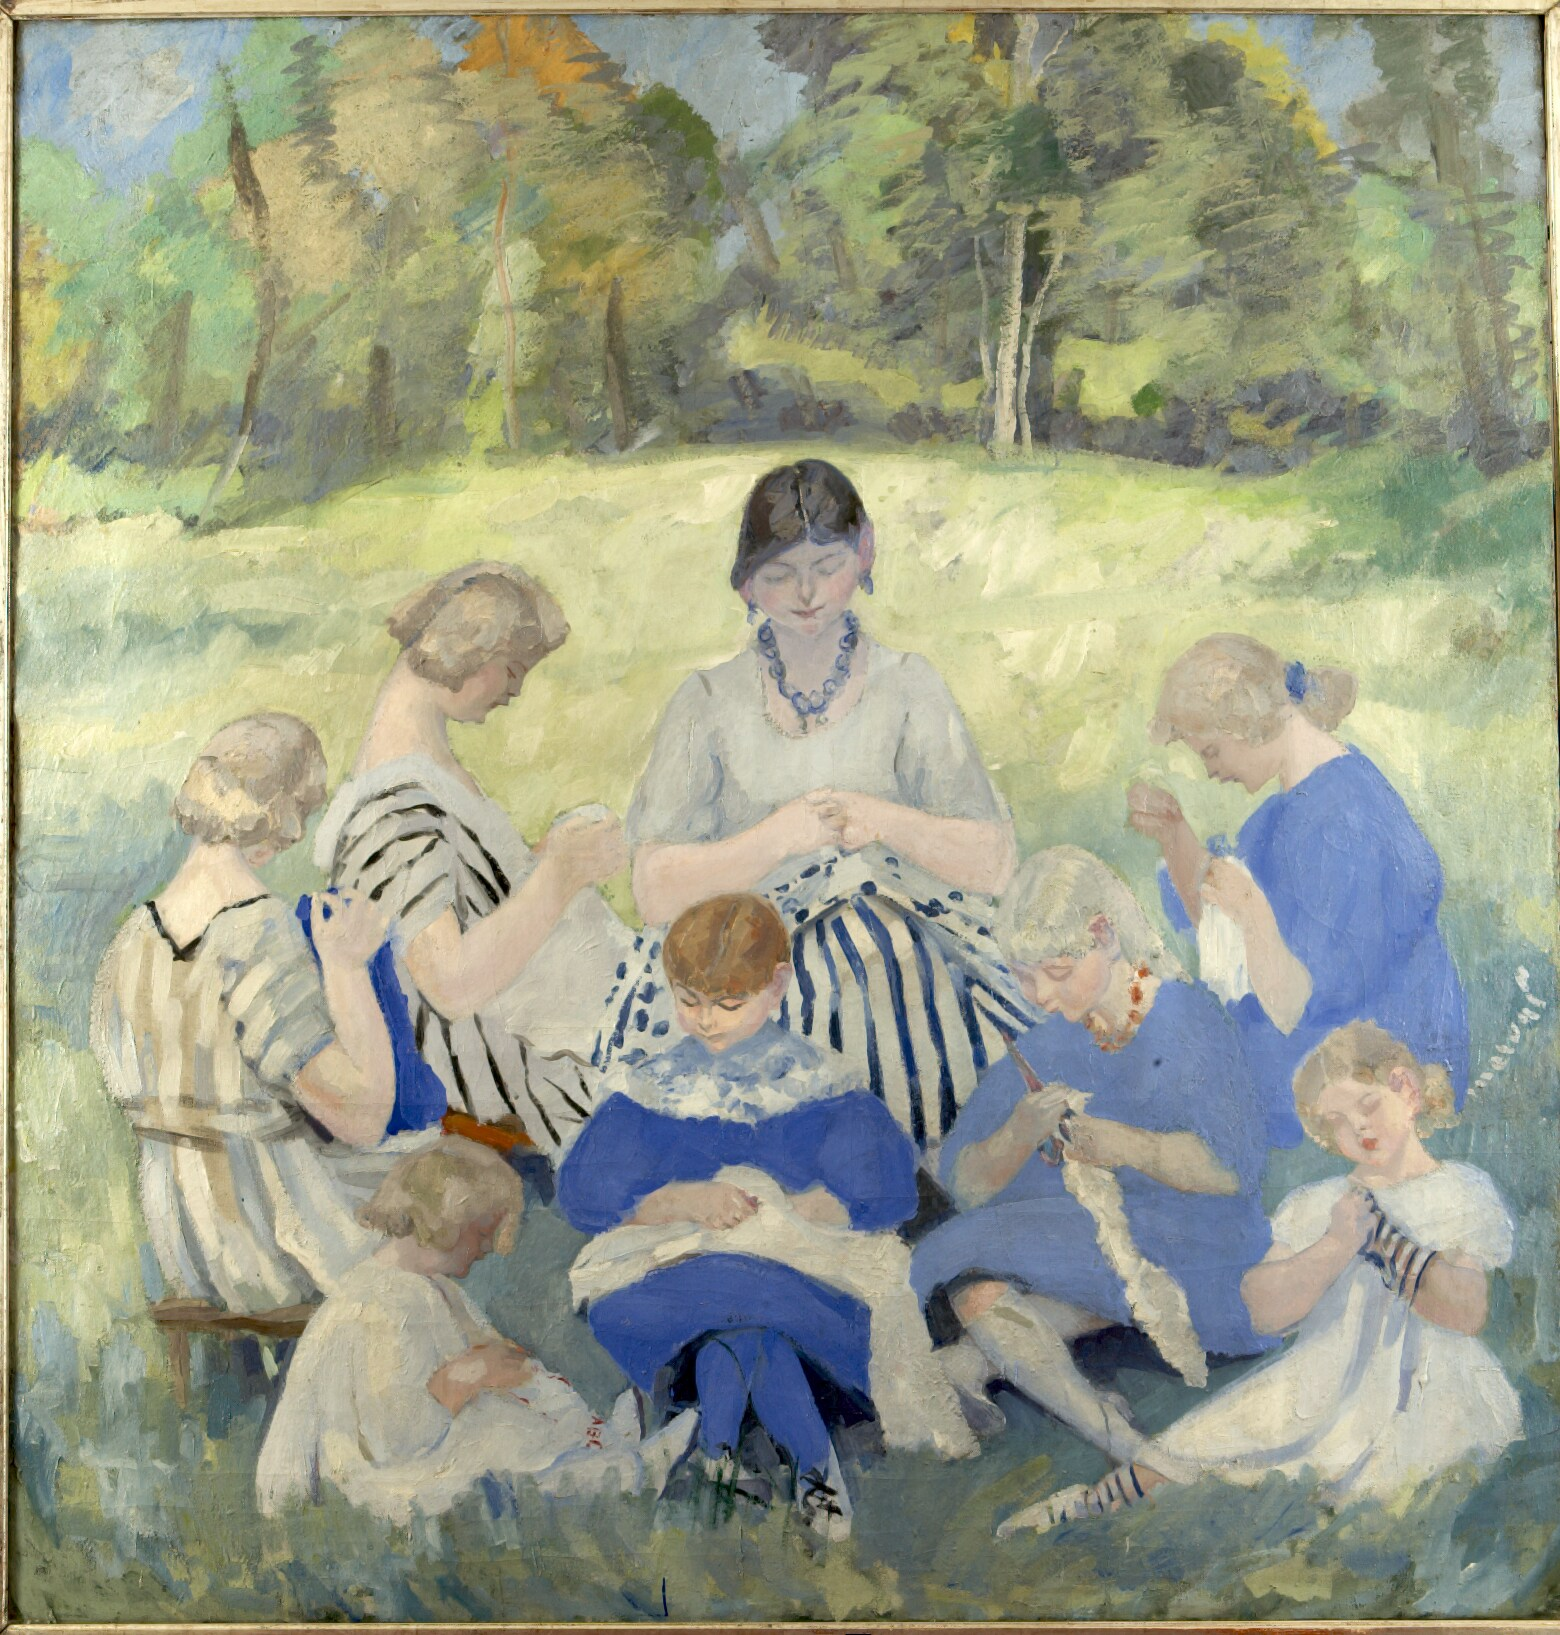 Les Soeurs Couseuses, Jacqueline Marval 1912. Oil on canvas, 200 x 200 cm. Galerie Katia Granof et Pierre Larock collection, Paris.